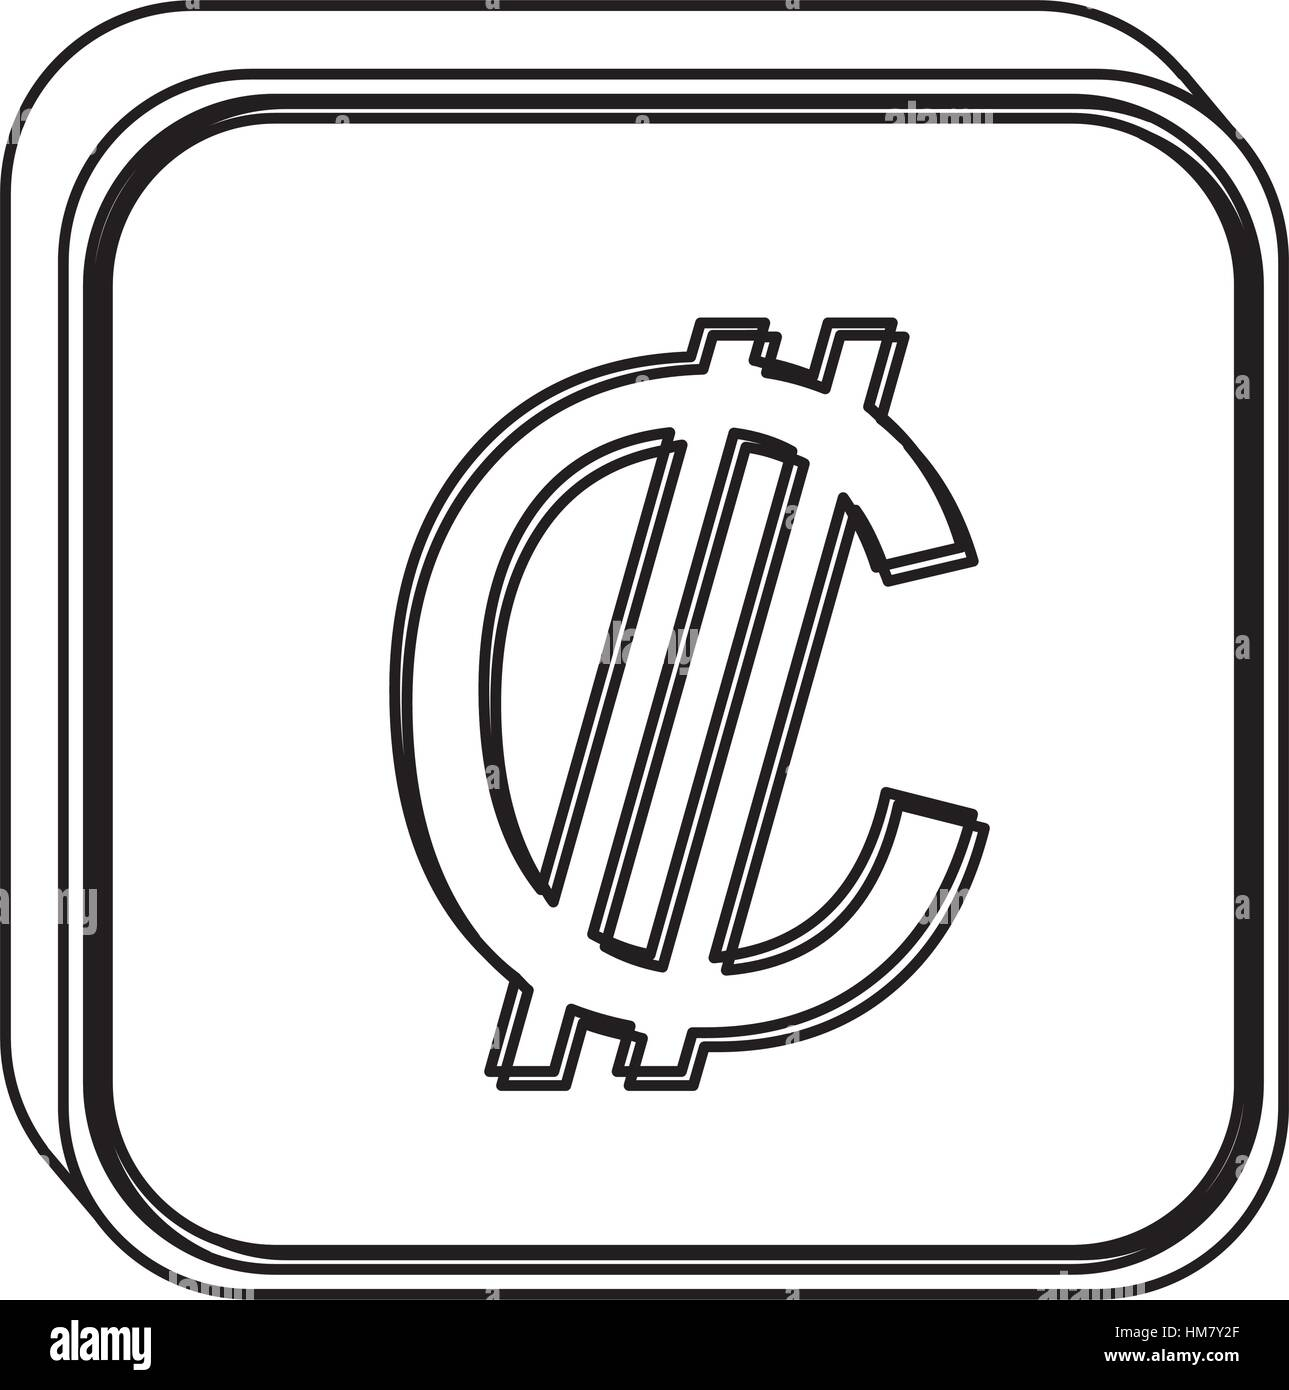 Monochrome square contour with currency symbol of colon costa rica monochrome square contour with currency symbol of colon costa rica vector illustration biocorpaavc Gallery